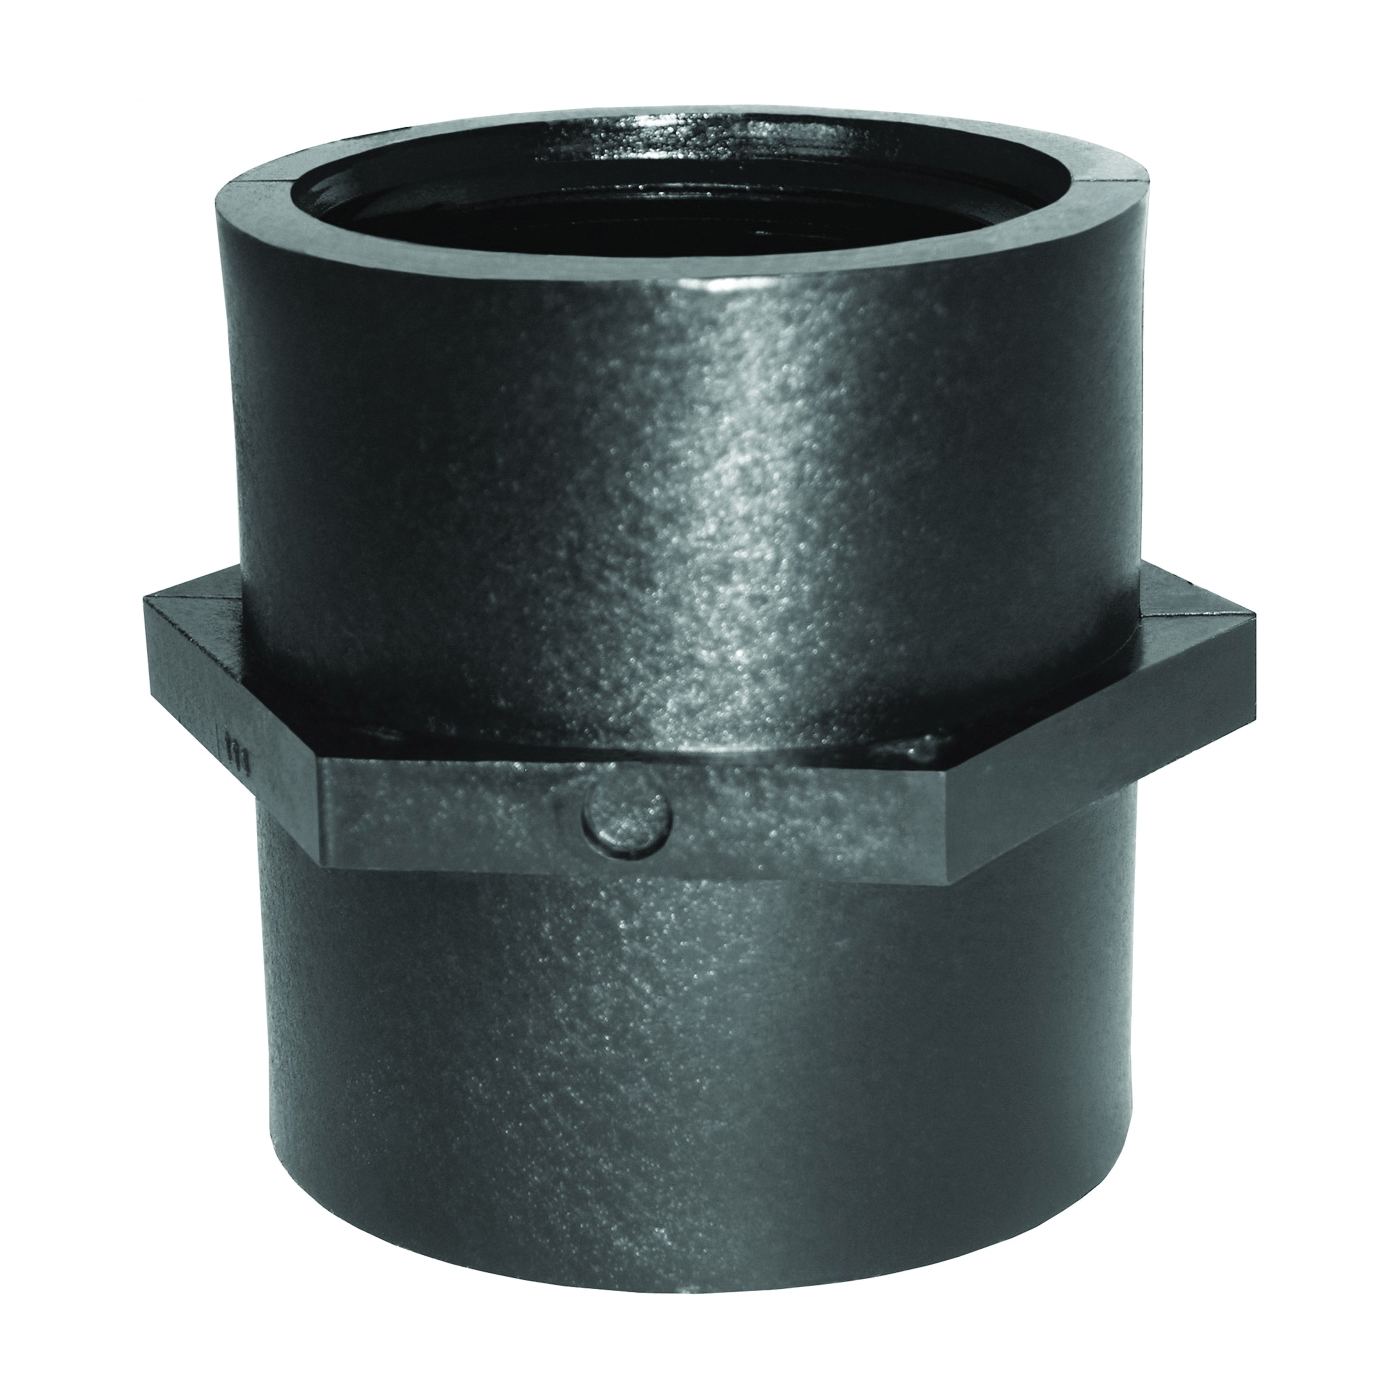 Picture of GREEN LEAF FTC 34 P Pipe Coupler, 3/4 in, Female NPT